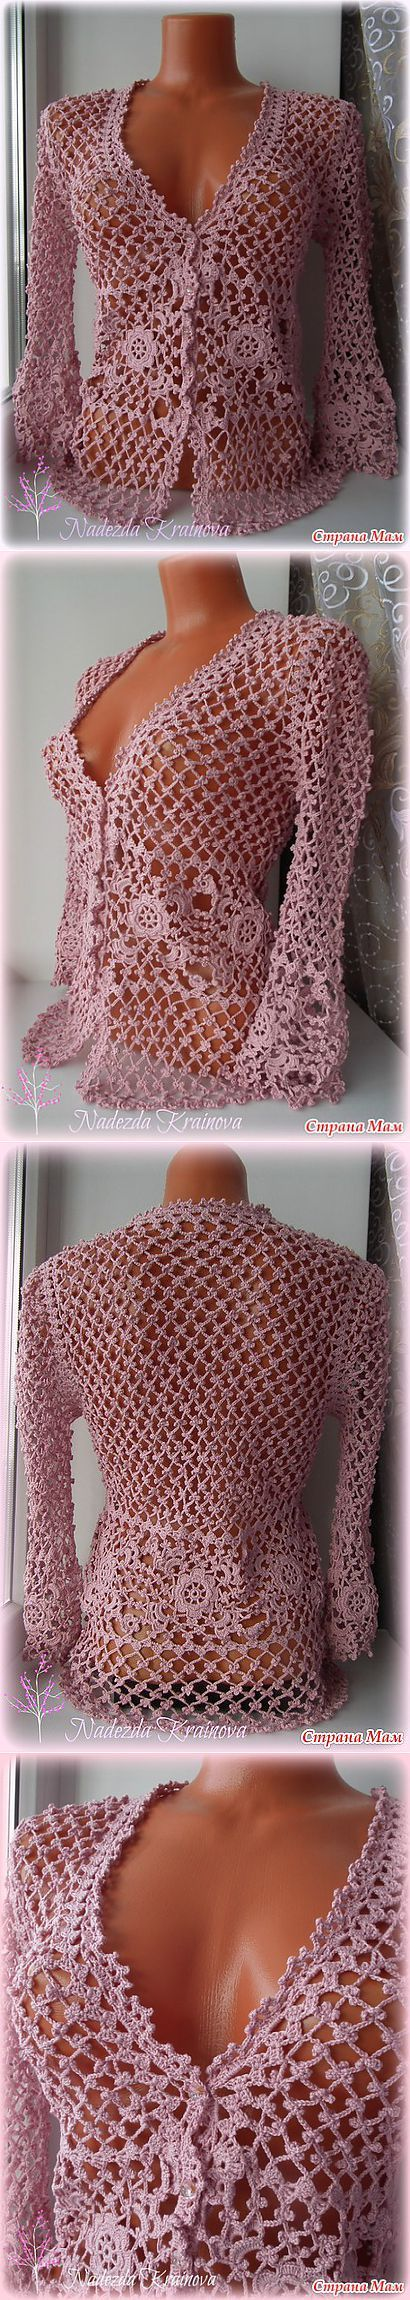 Learn How to Knit Jacket dusty rose for Women